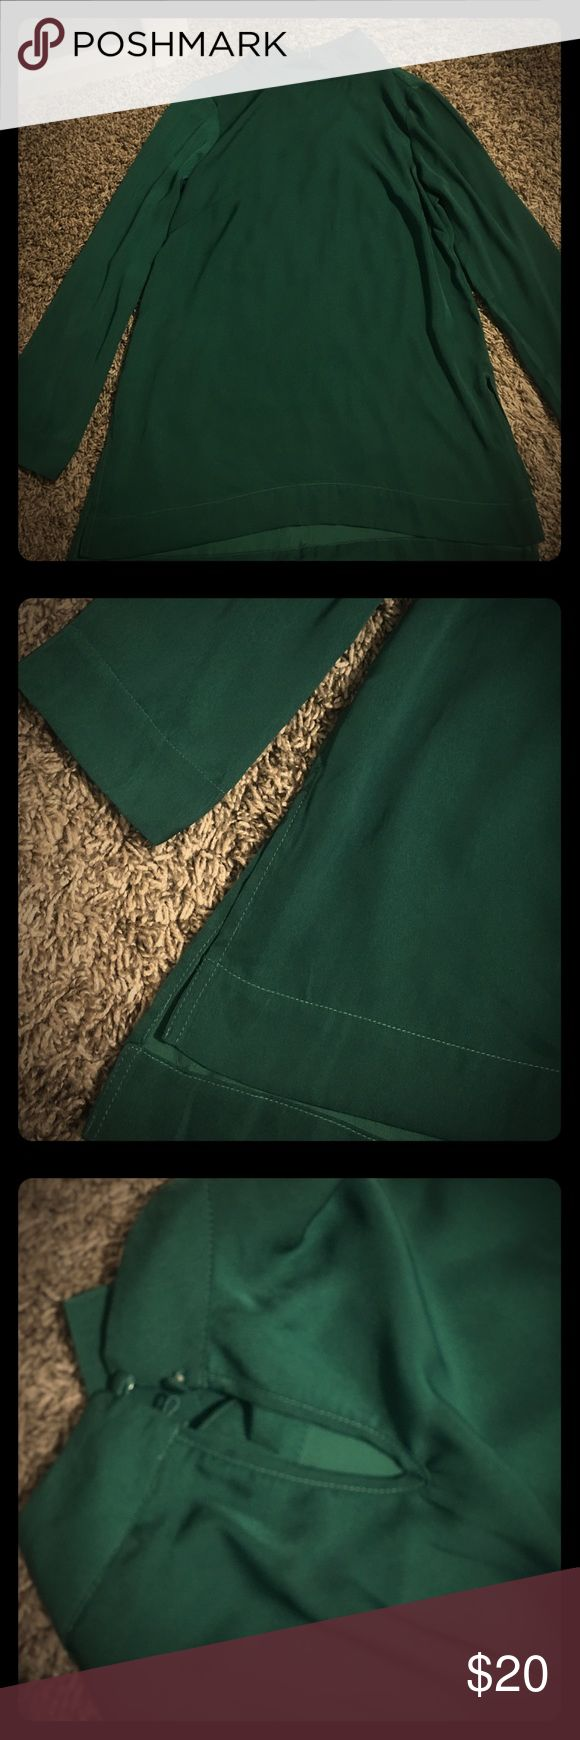 Very flattering H&M silk emerald green tunic Very flattering emerald green tunic/top from H&M wore once! H&M Tops Tunics